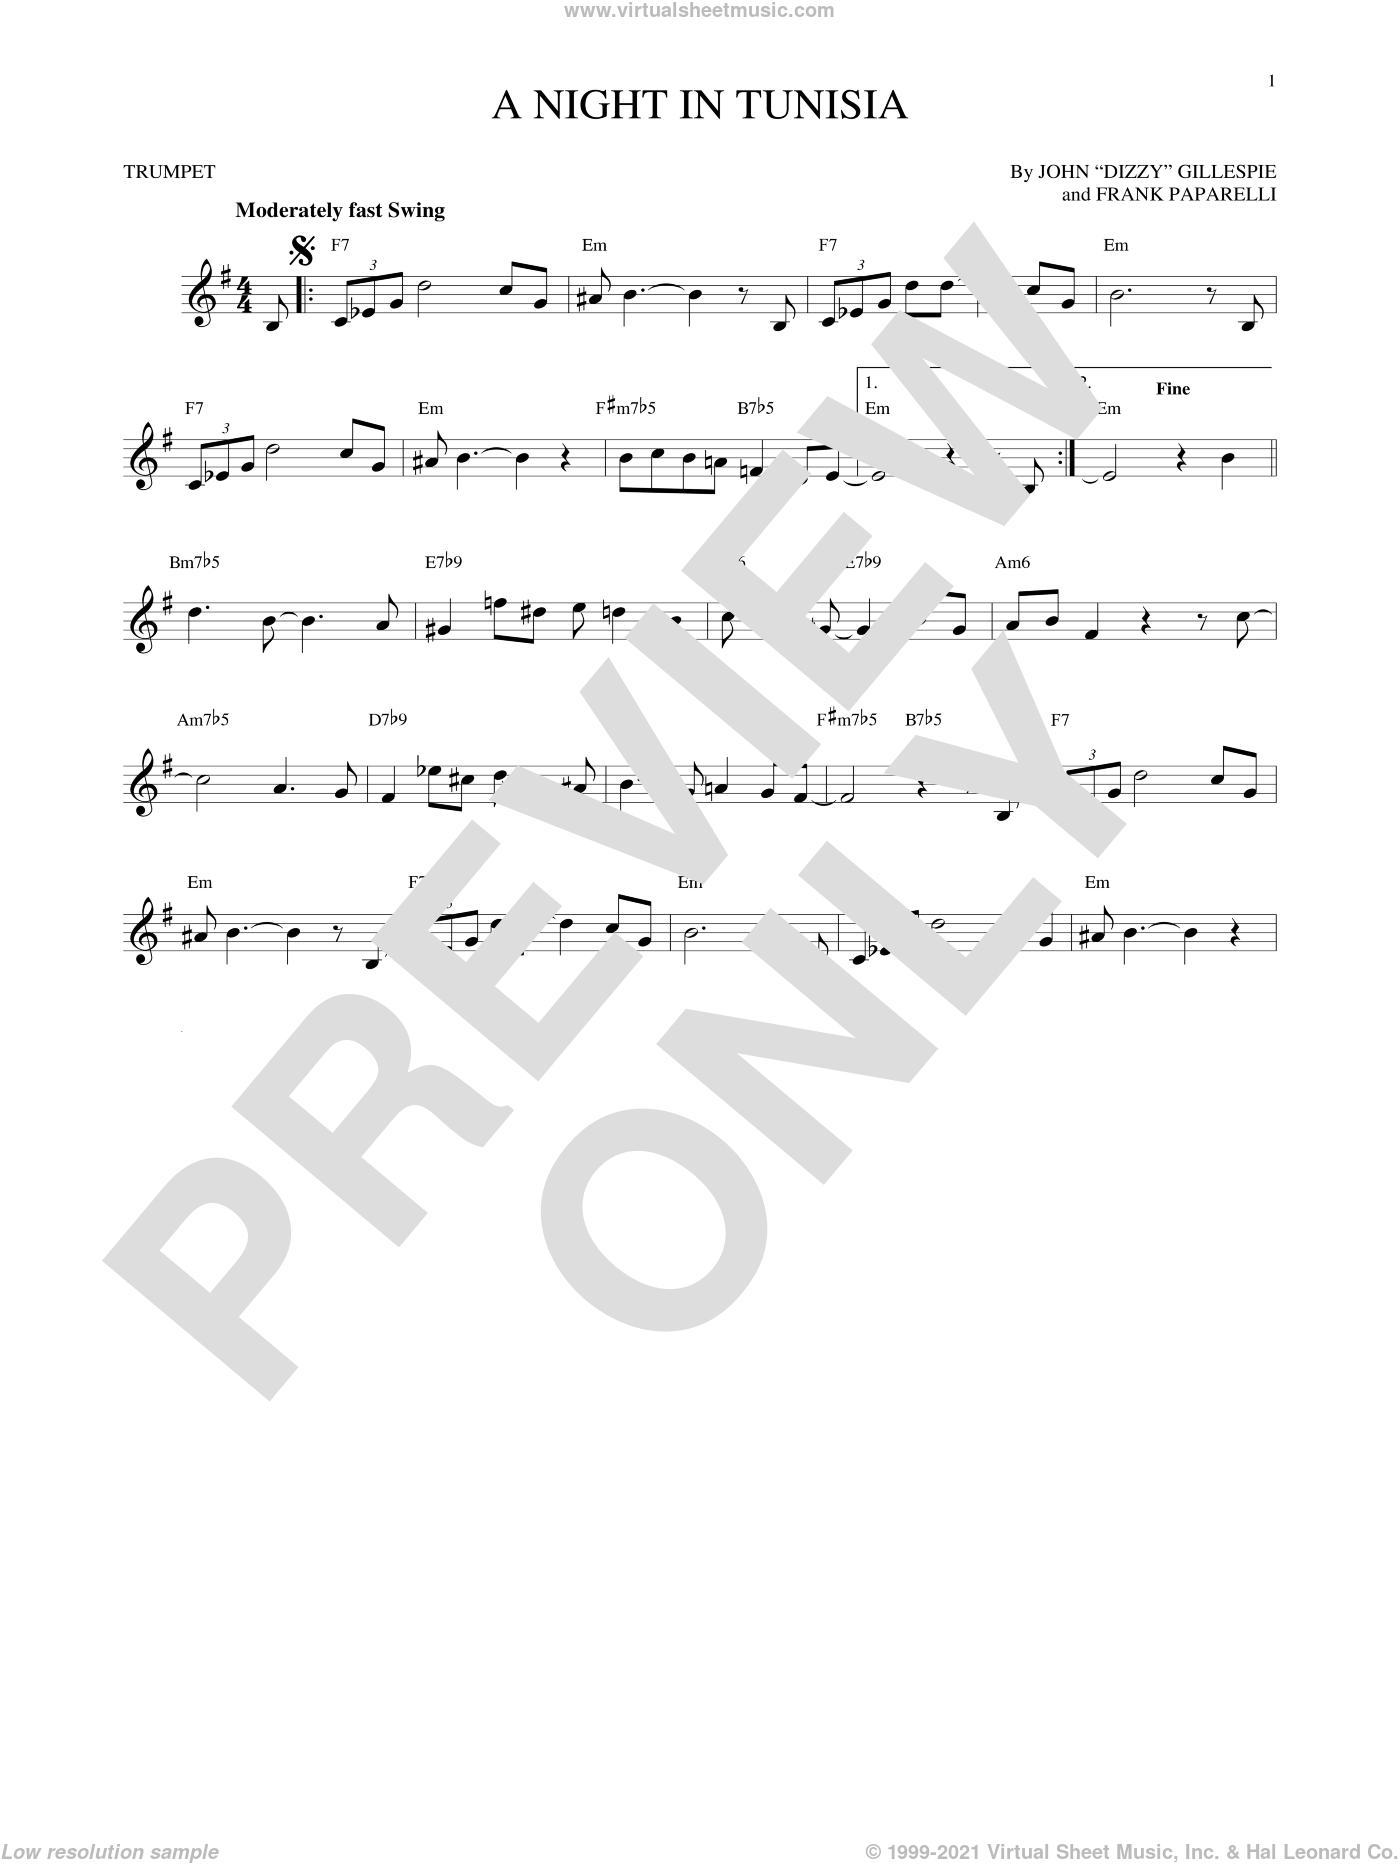 A Night In Tunisia sheet music for trumpet solo by Frank Paparelli and Dizzy Gillespie. Score Image Preview.